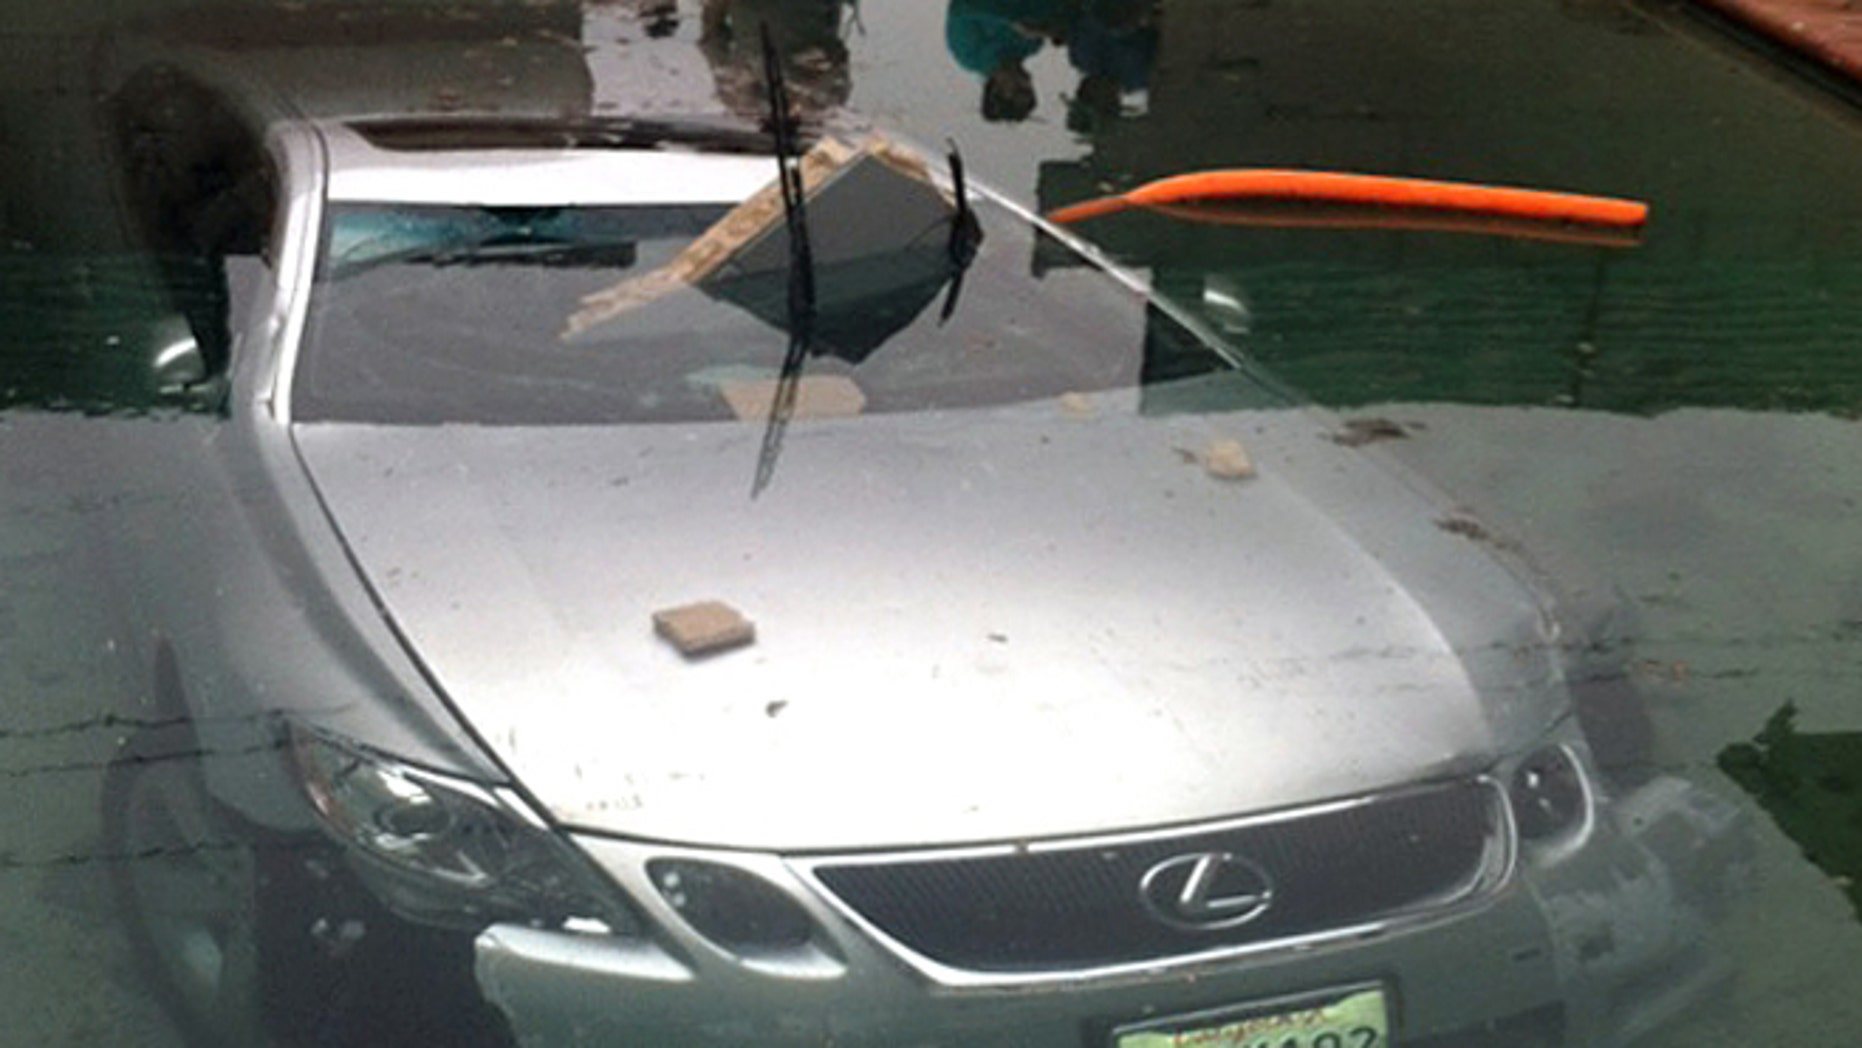 May 13, 2012: In this photo provided by Beatriz Diaz, officials investigate the scene where a man crashed his car through a wall and into a swimming pool in La Puente, Calif., early Sunday morning.